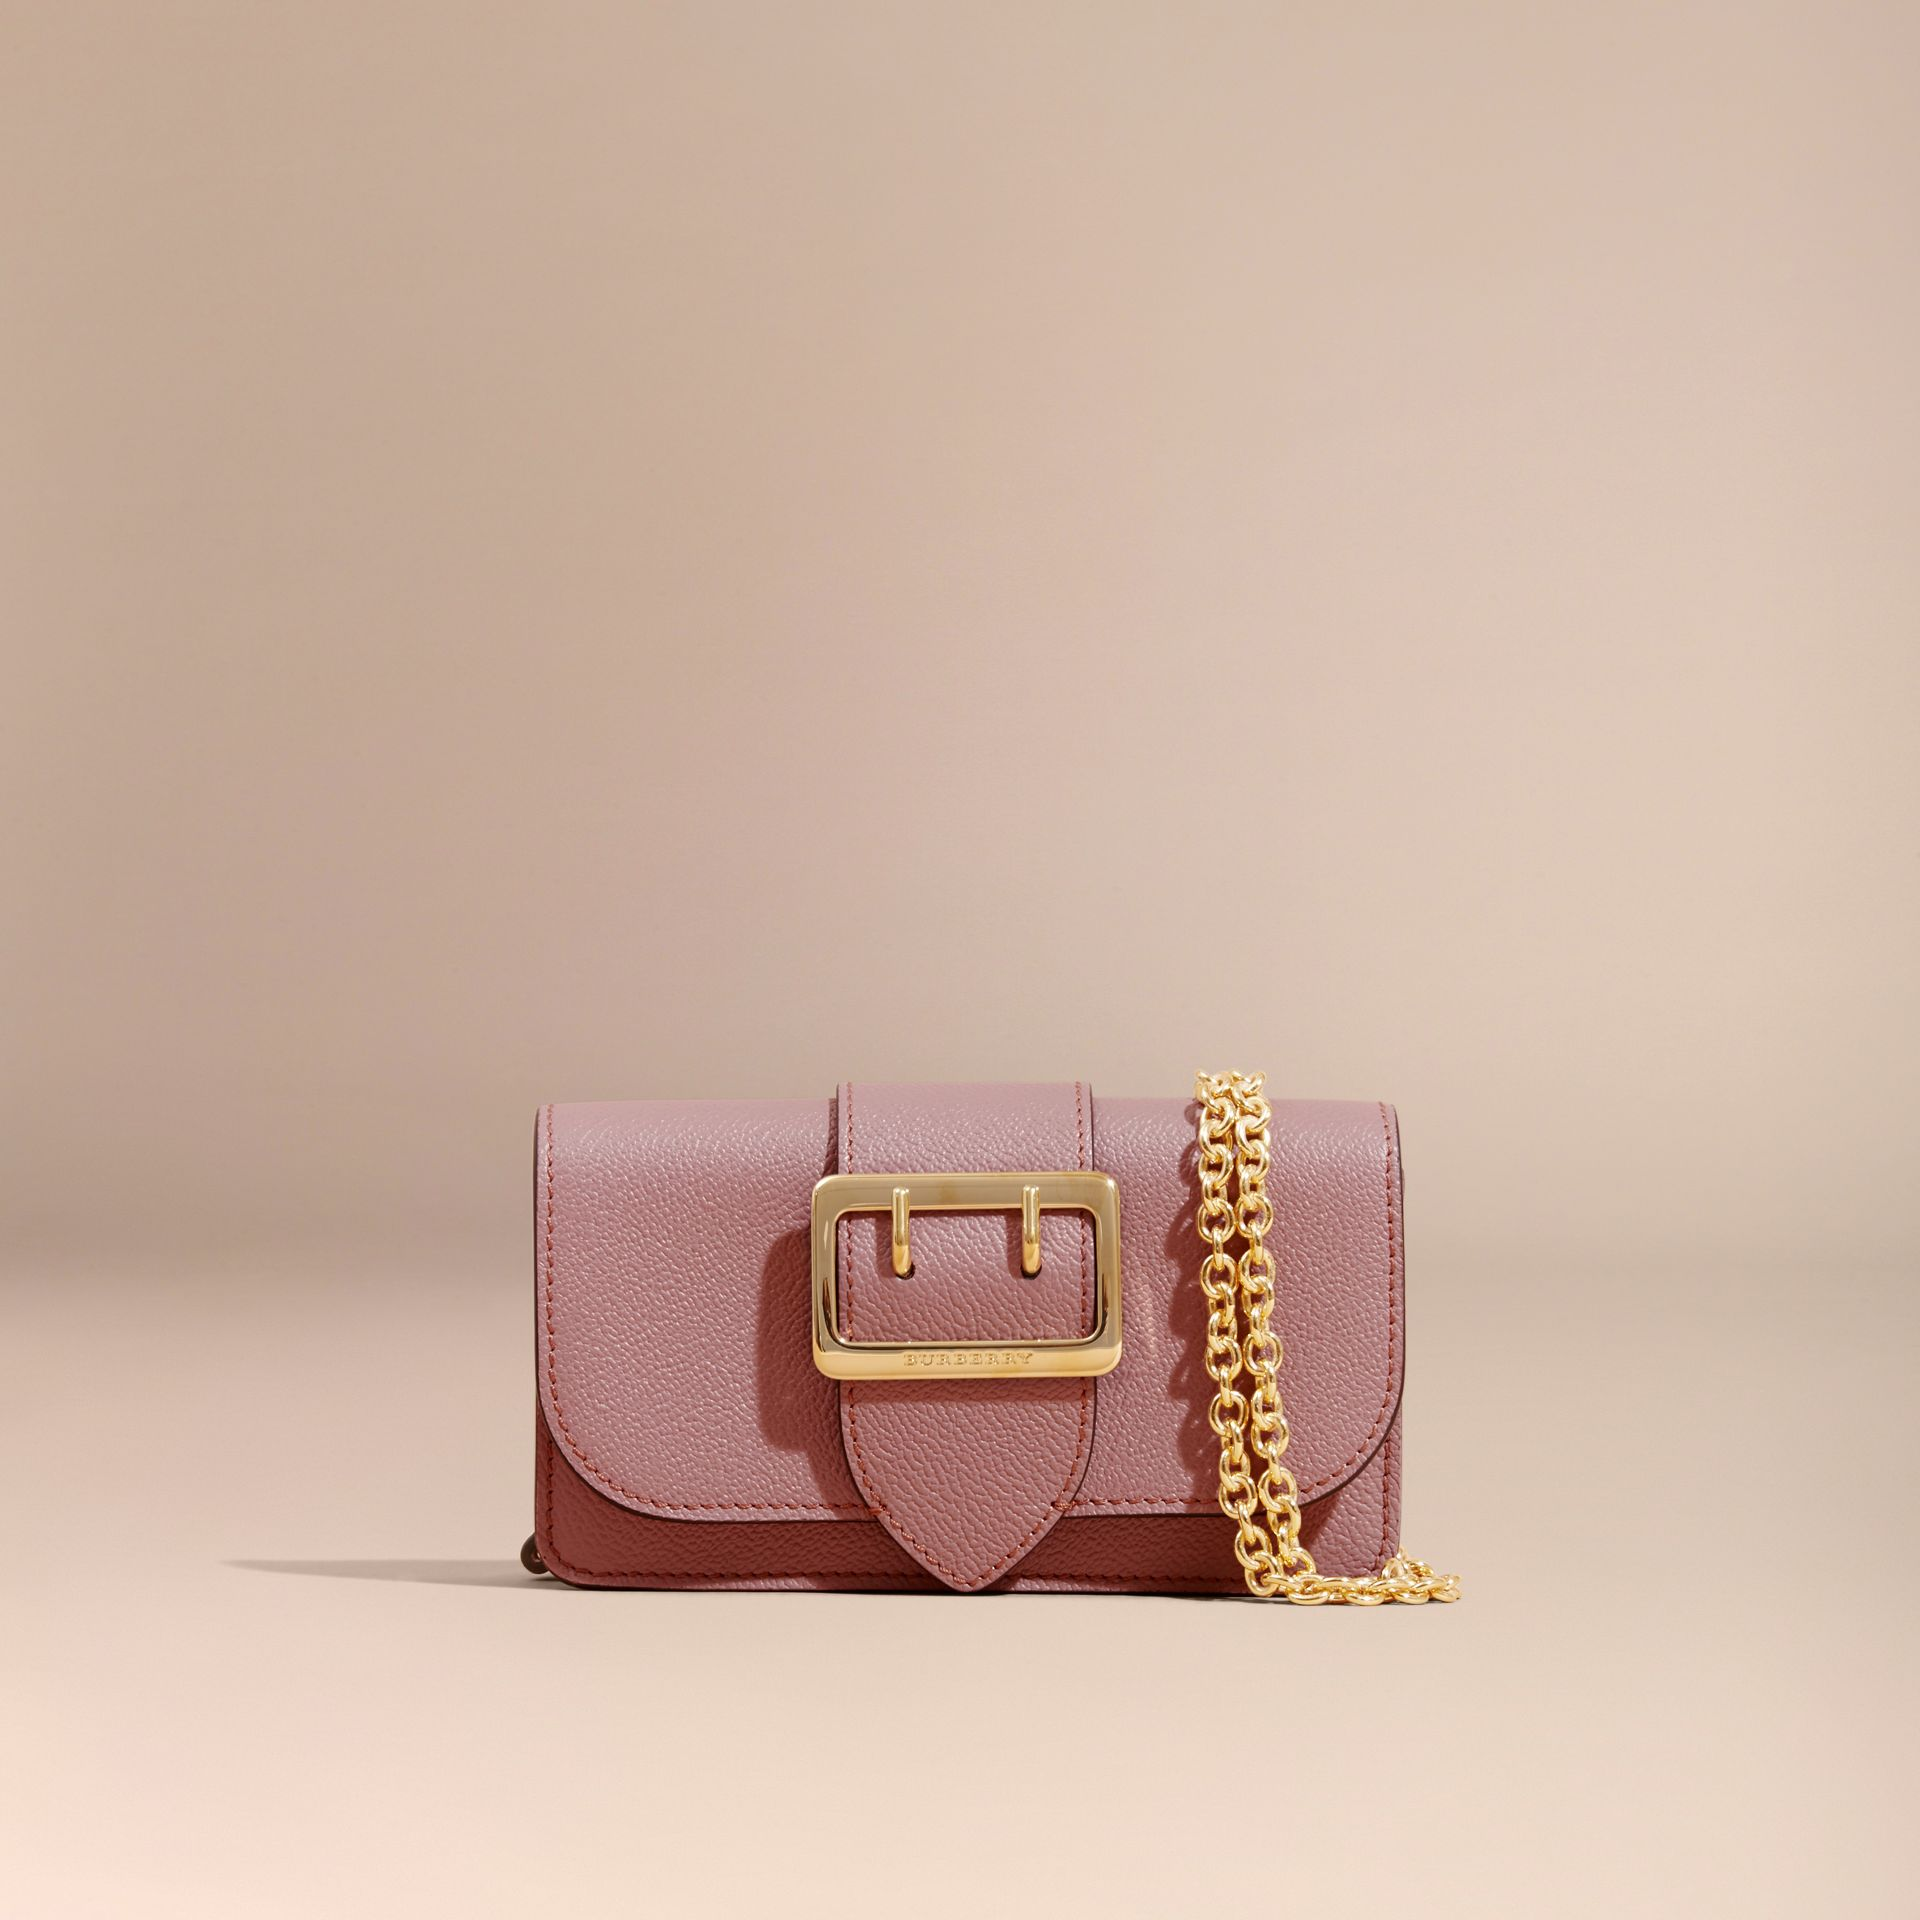 Borsa The Buckle mini in pelle a grana (Rosa Polvere) - Donna | Burberry - immagine della galleria 9